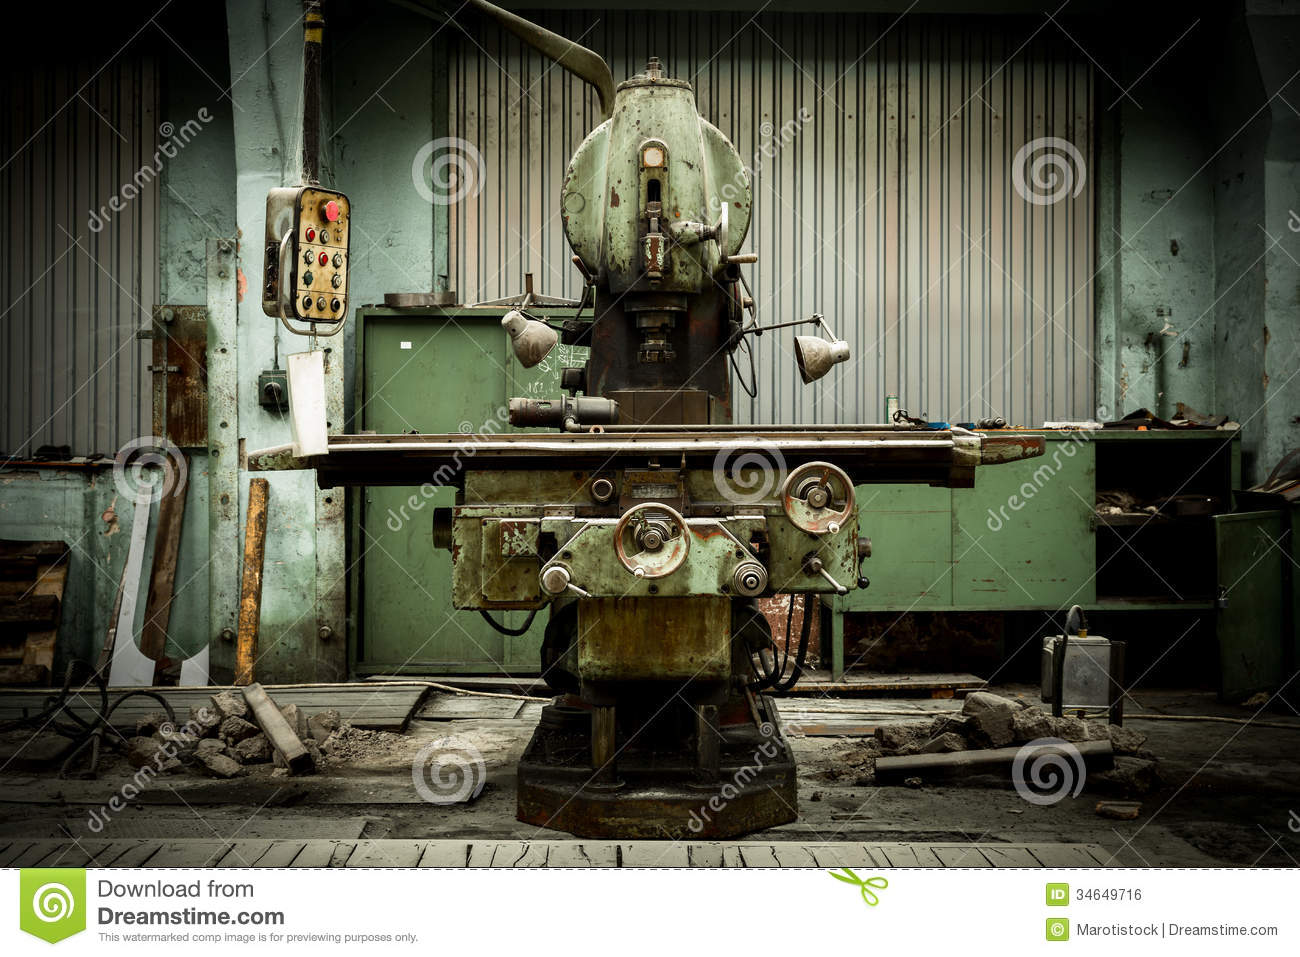 machine industrial